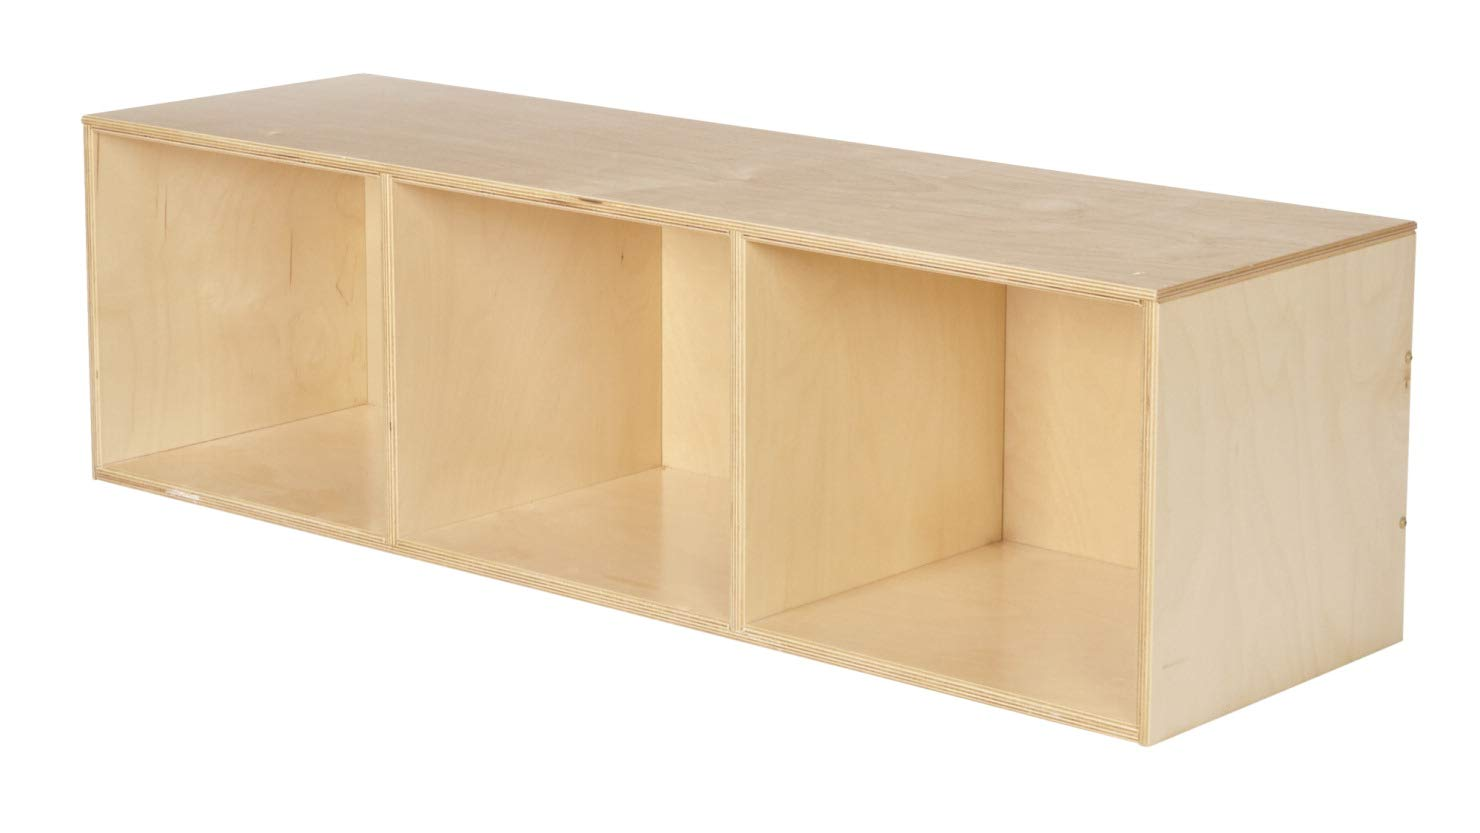 Childcraft Stacker Compartment Storage, 3 Compartments, 47-3/4 x 14-1/4 x 13-3/4 Inches